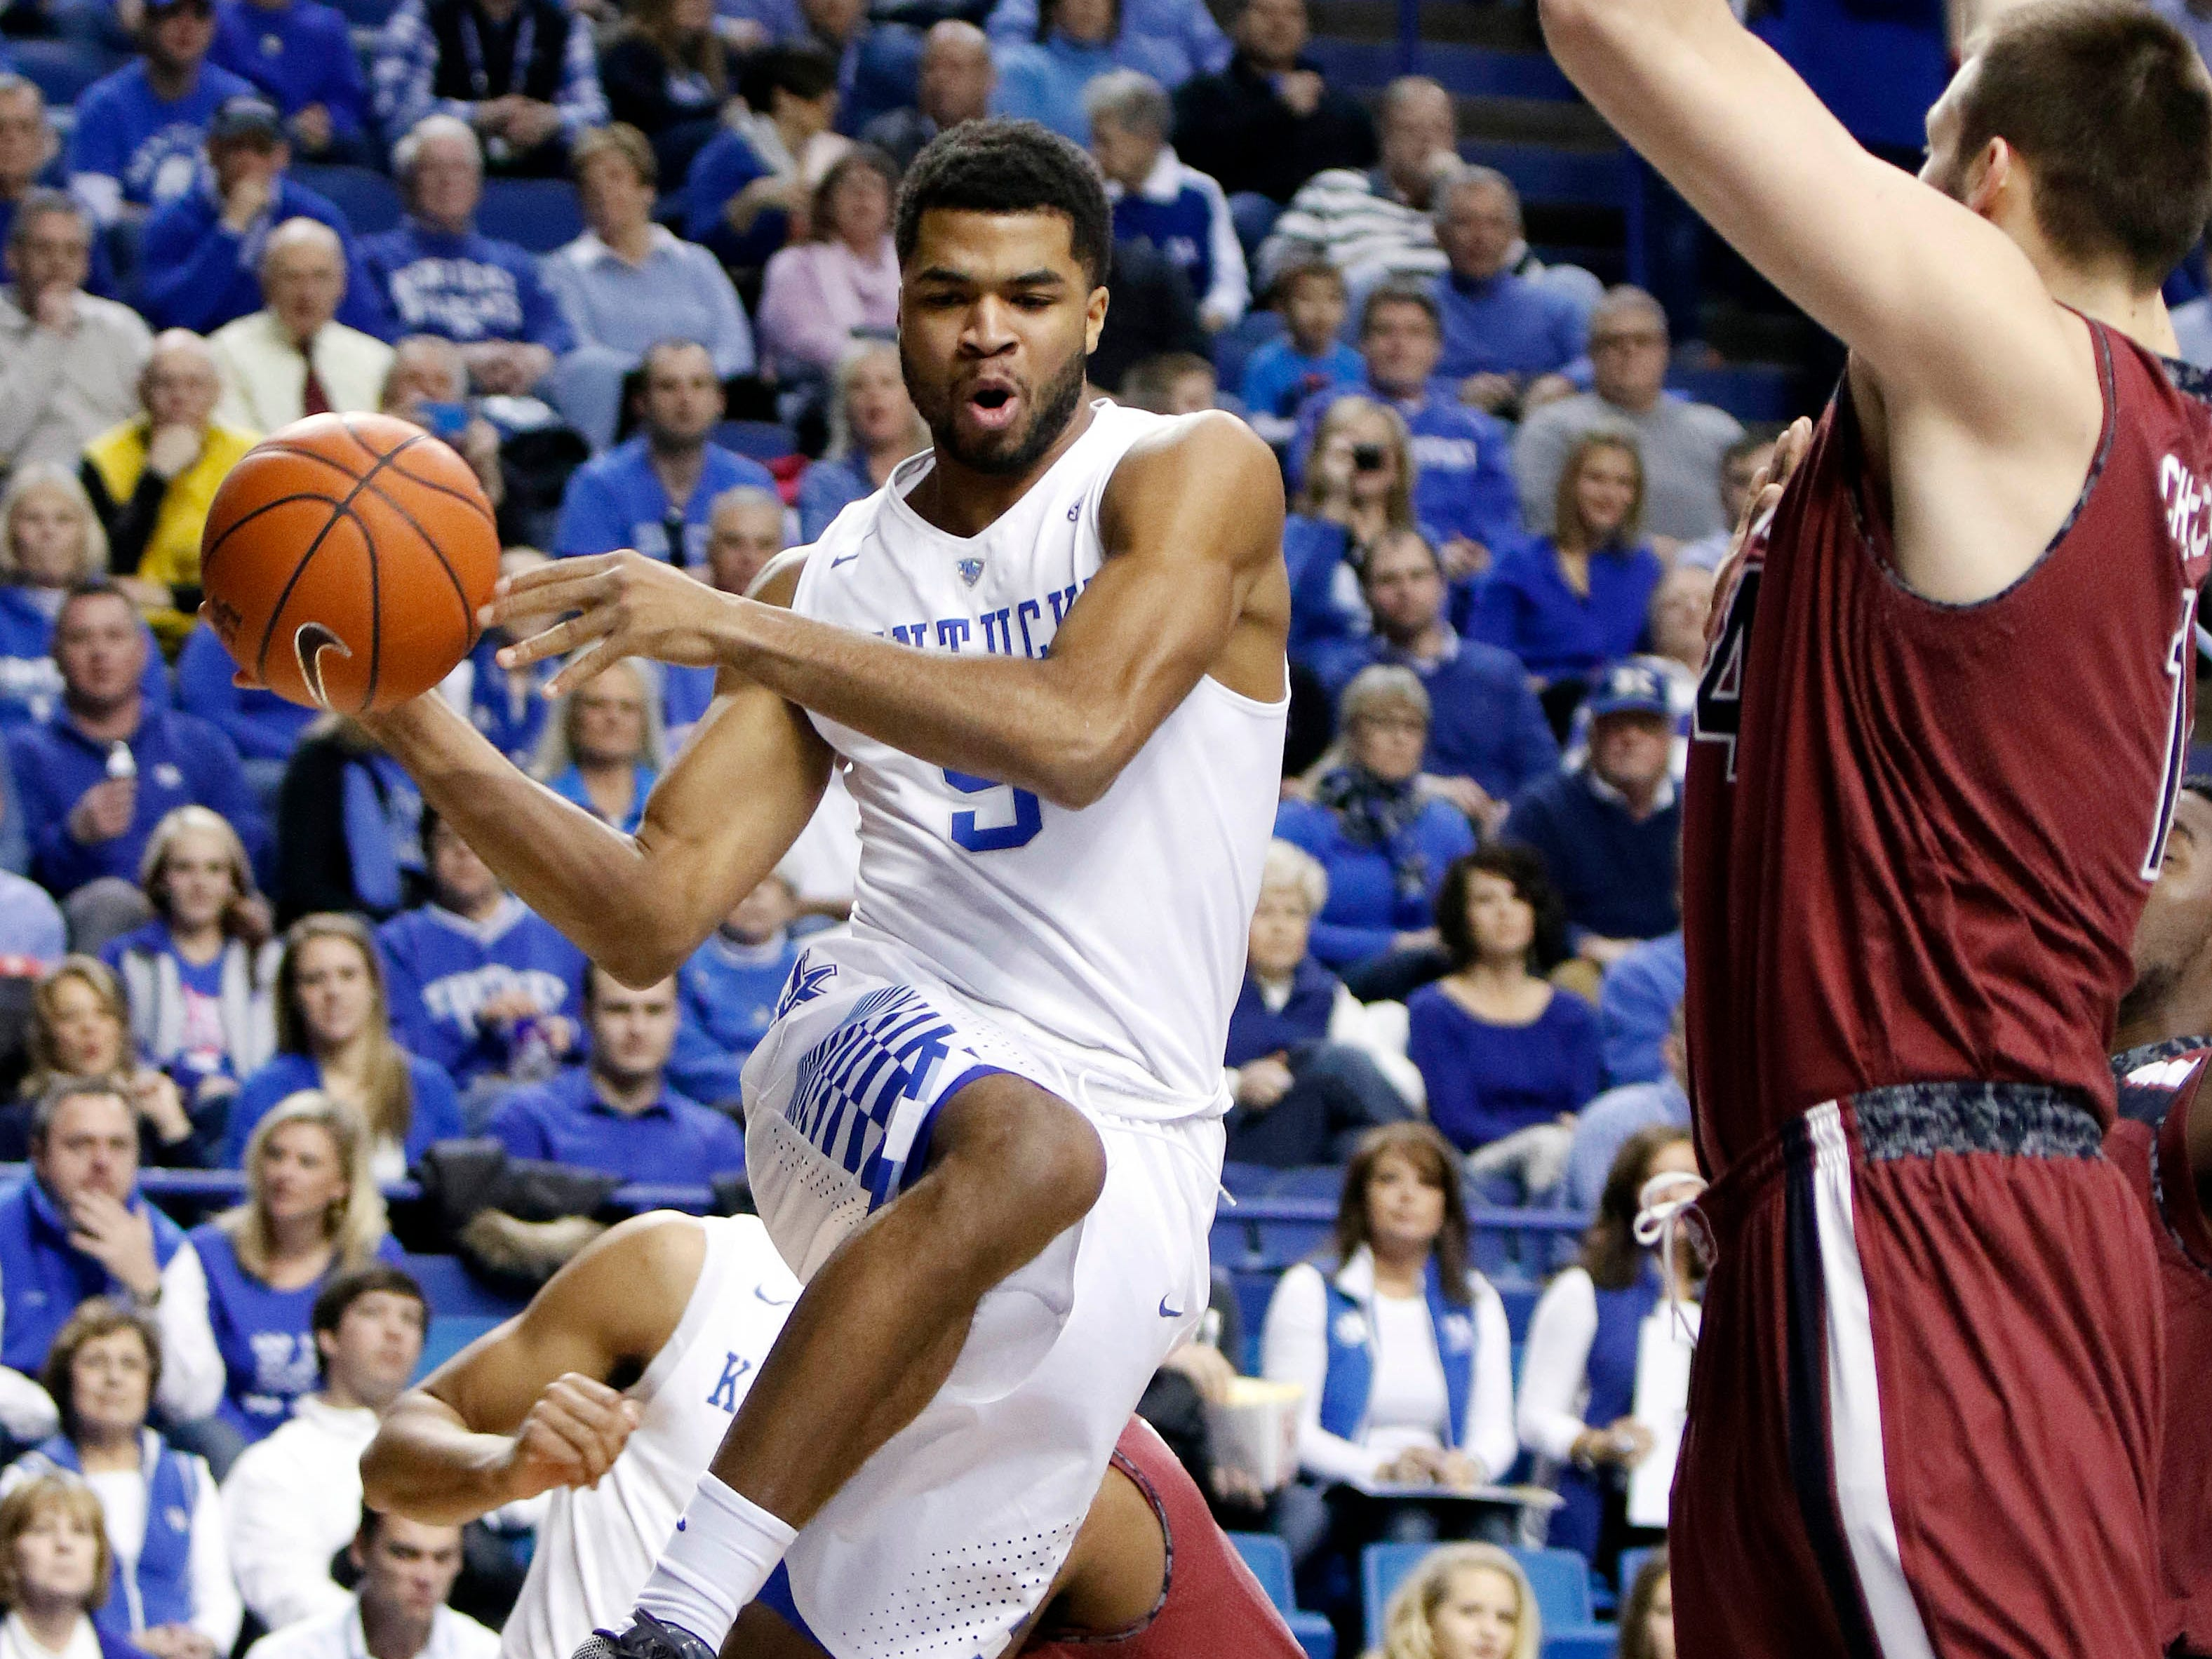 Kentucky's Andrew Harrison, left, passes around South Carolina's Laimonas Chatkevicius during the first half of an NCAA college basketball game, Saturday, Feb. 14, 2015, in Lexington, Ky. (AP Photo/James Crisp)